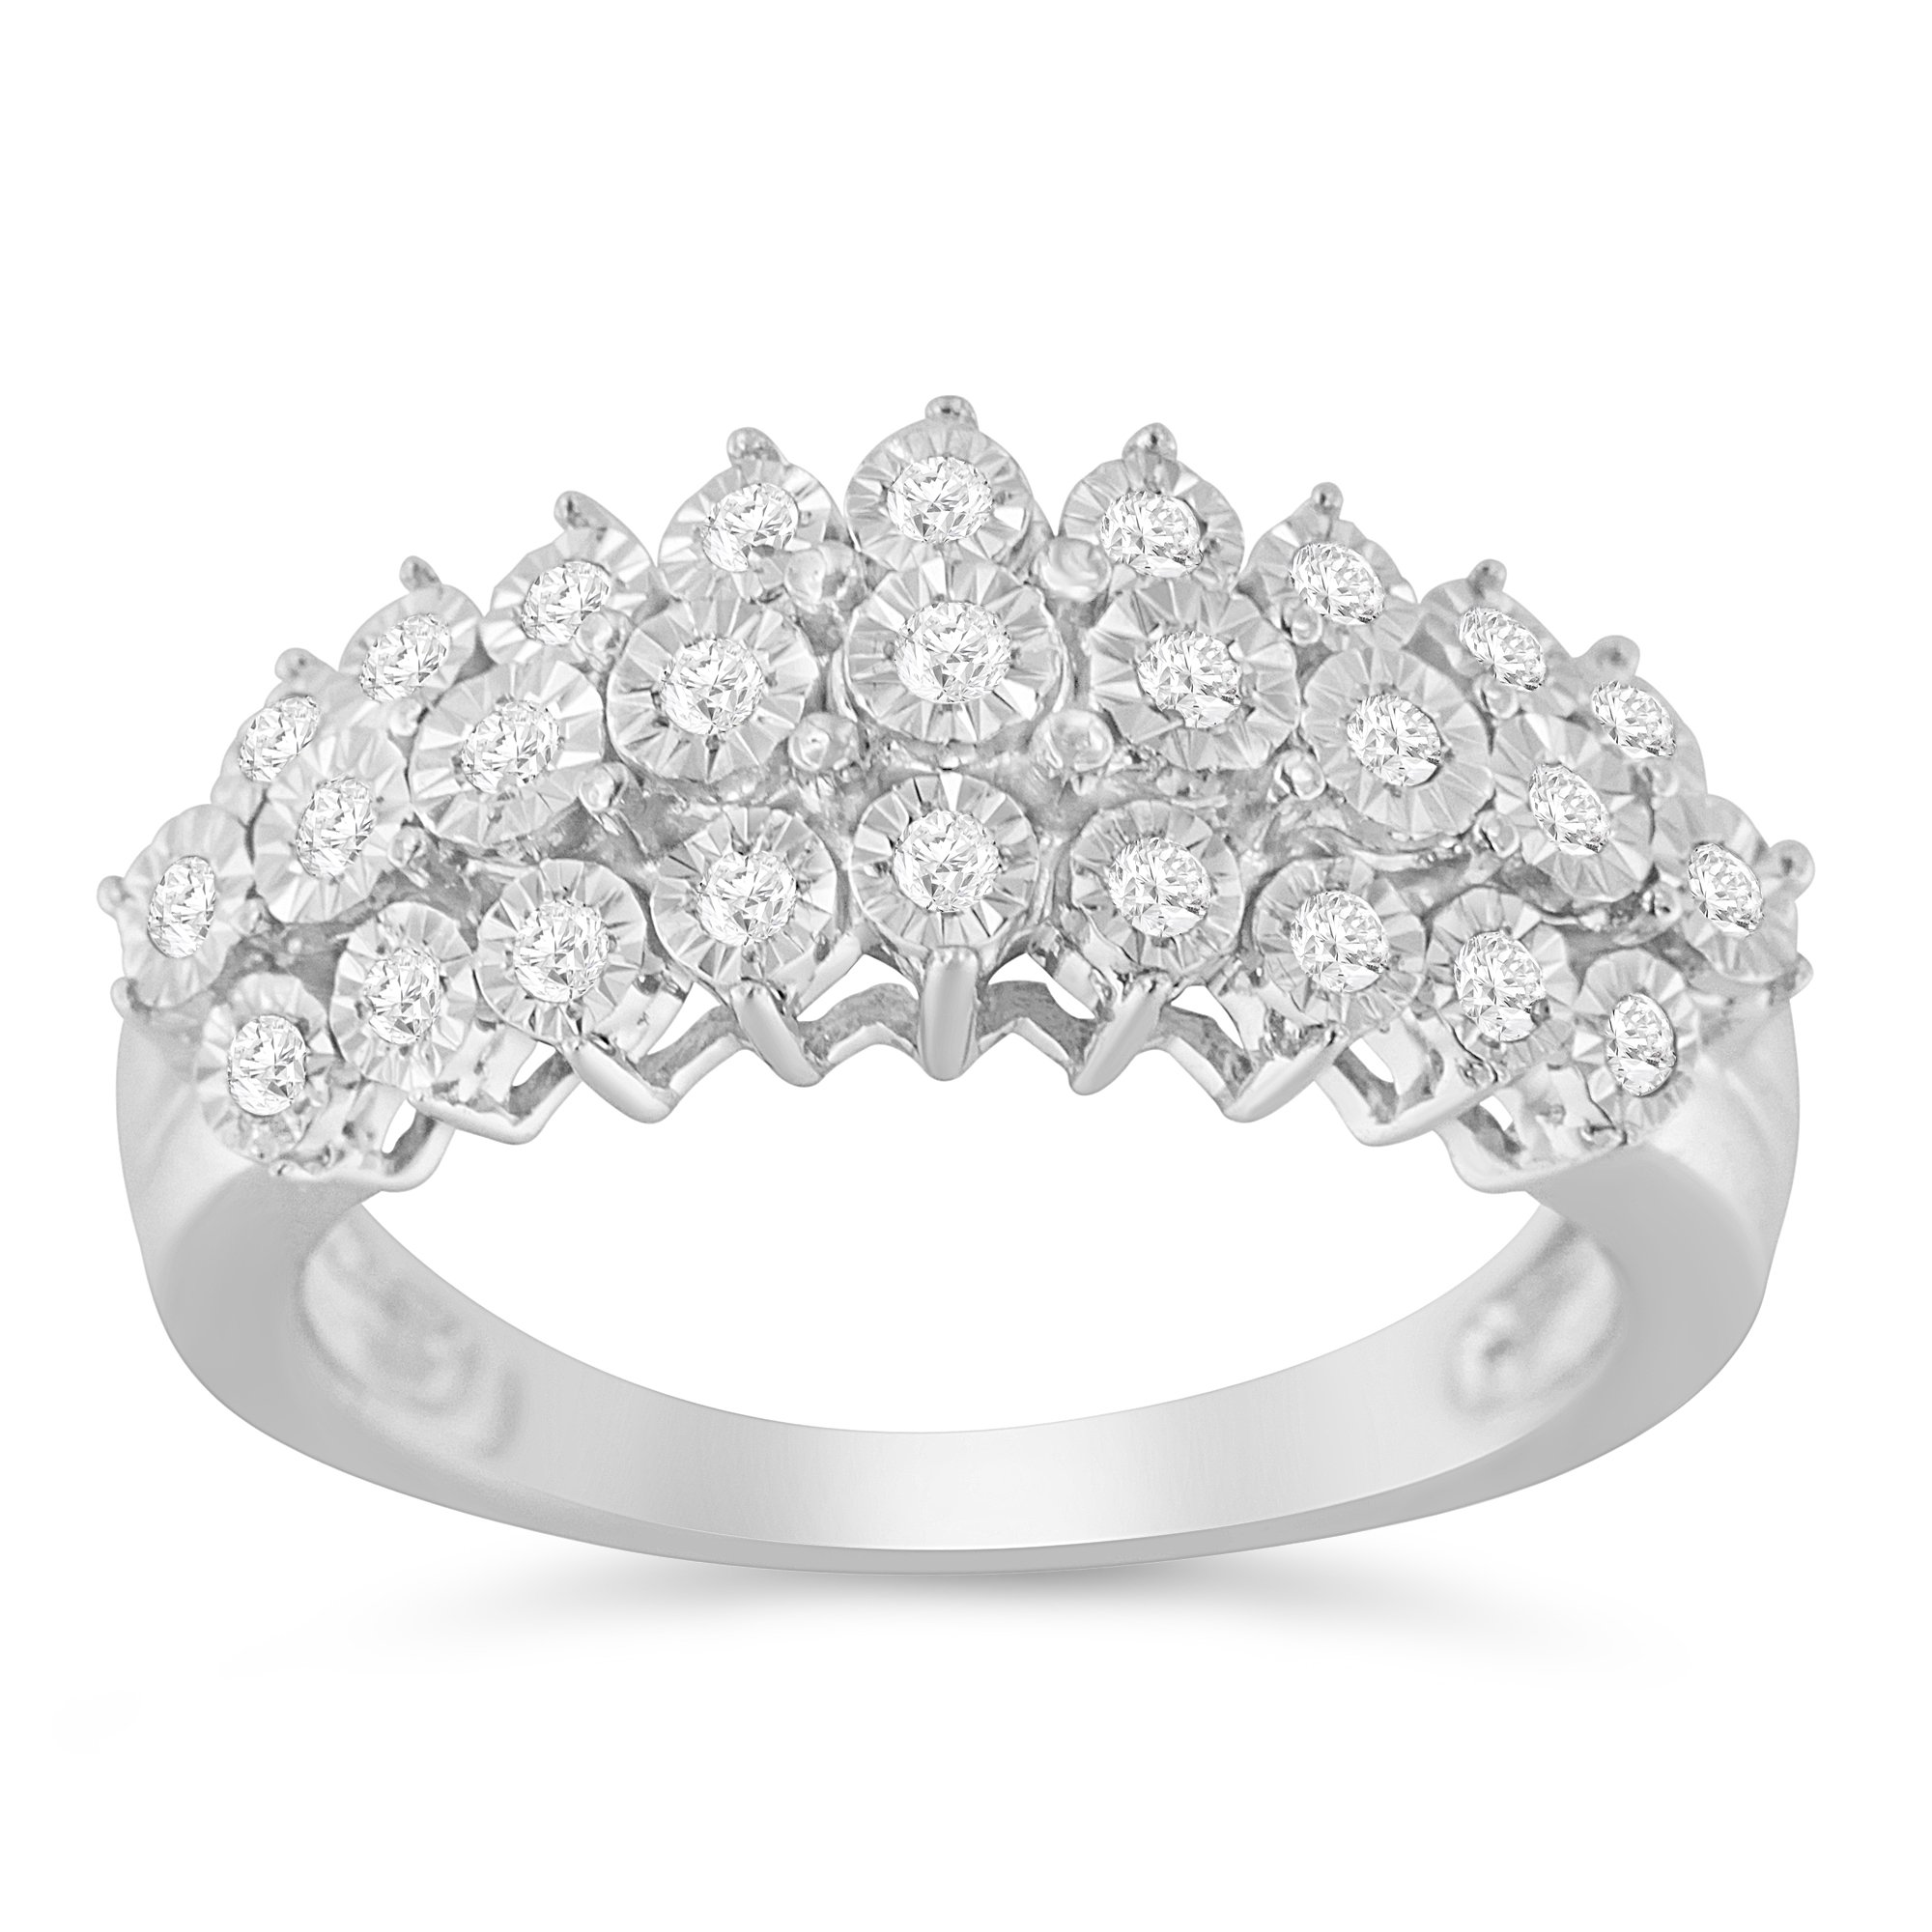 Sterling Silver Rose Cut Diamond Three Row Modern Band Ring (0.3 cttw, I-J Color, I2-I3 Clarity)